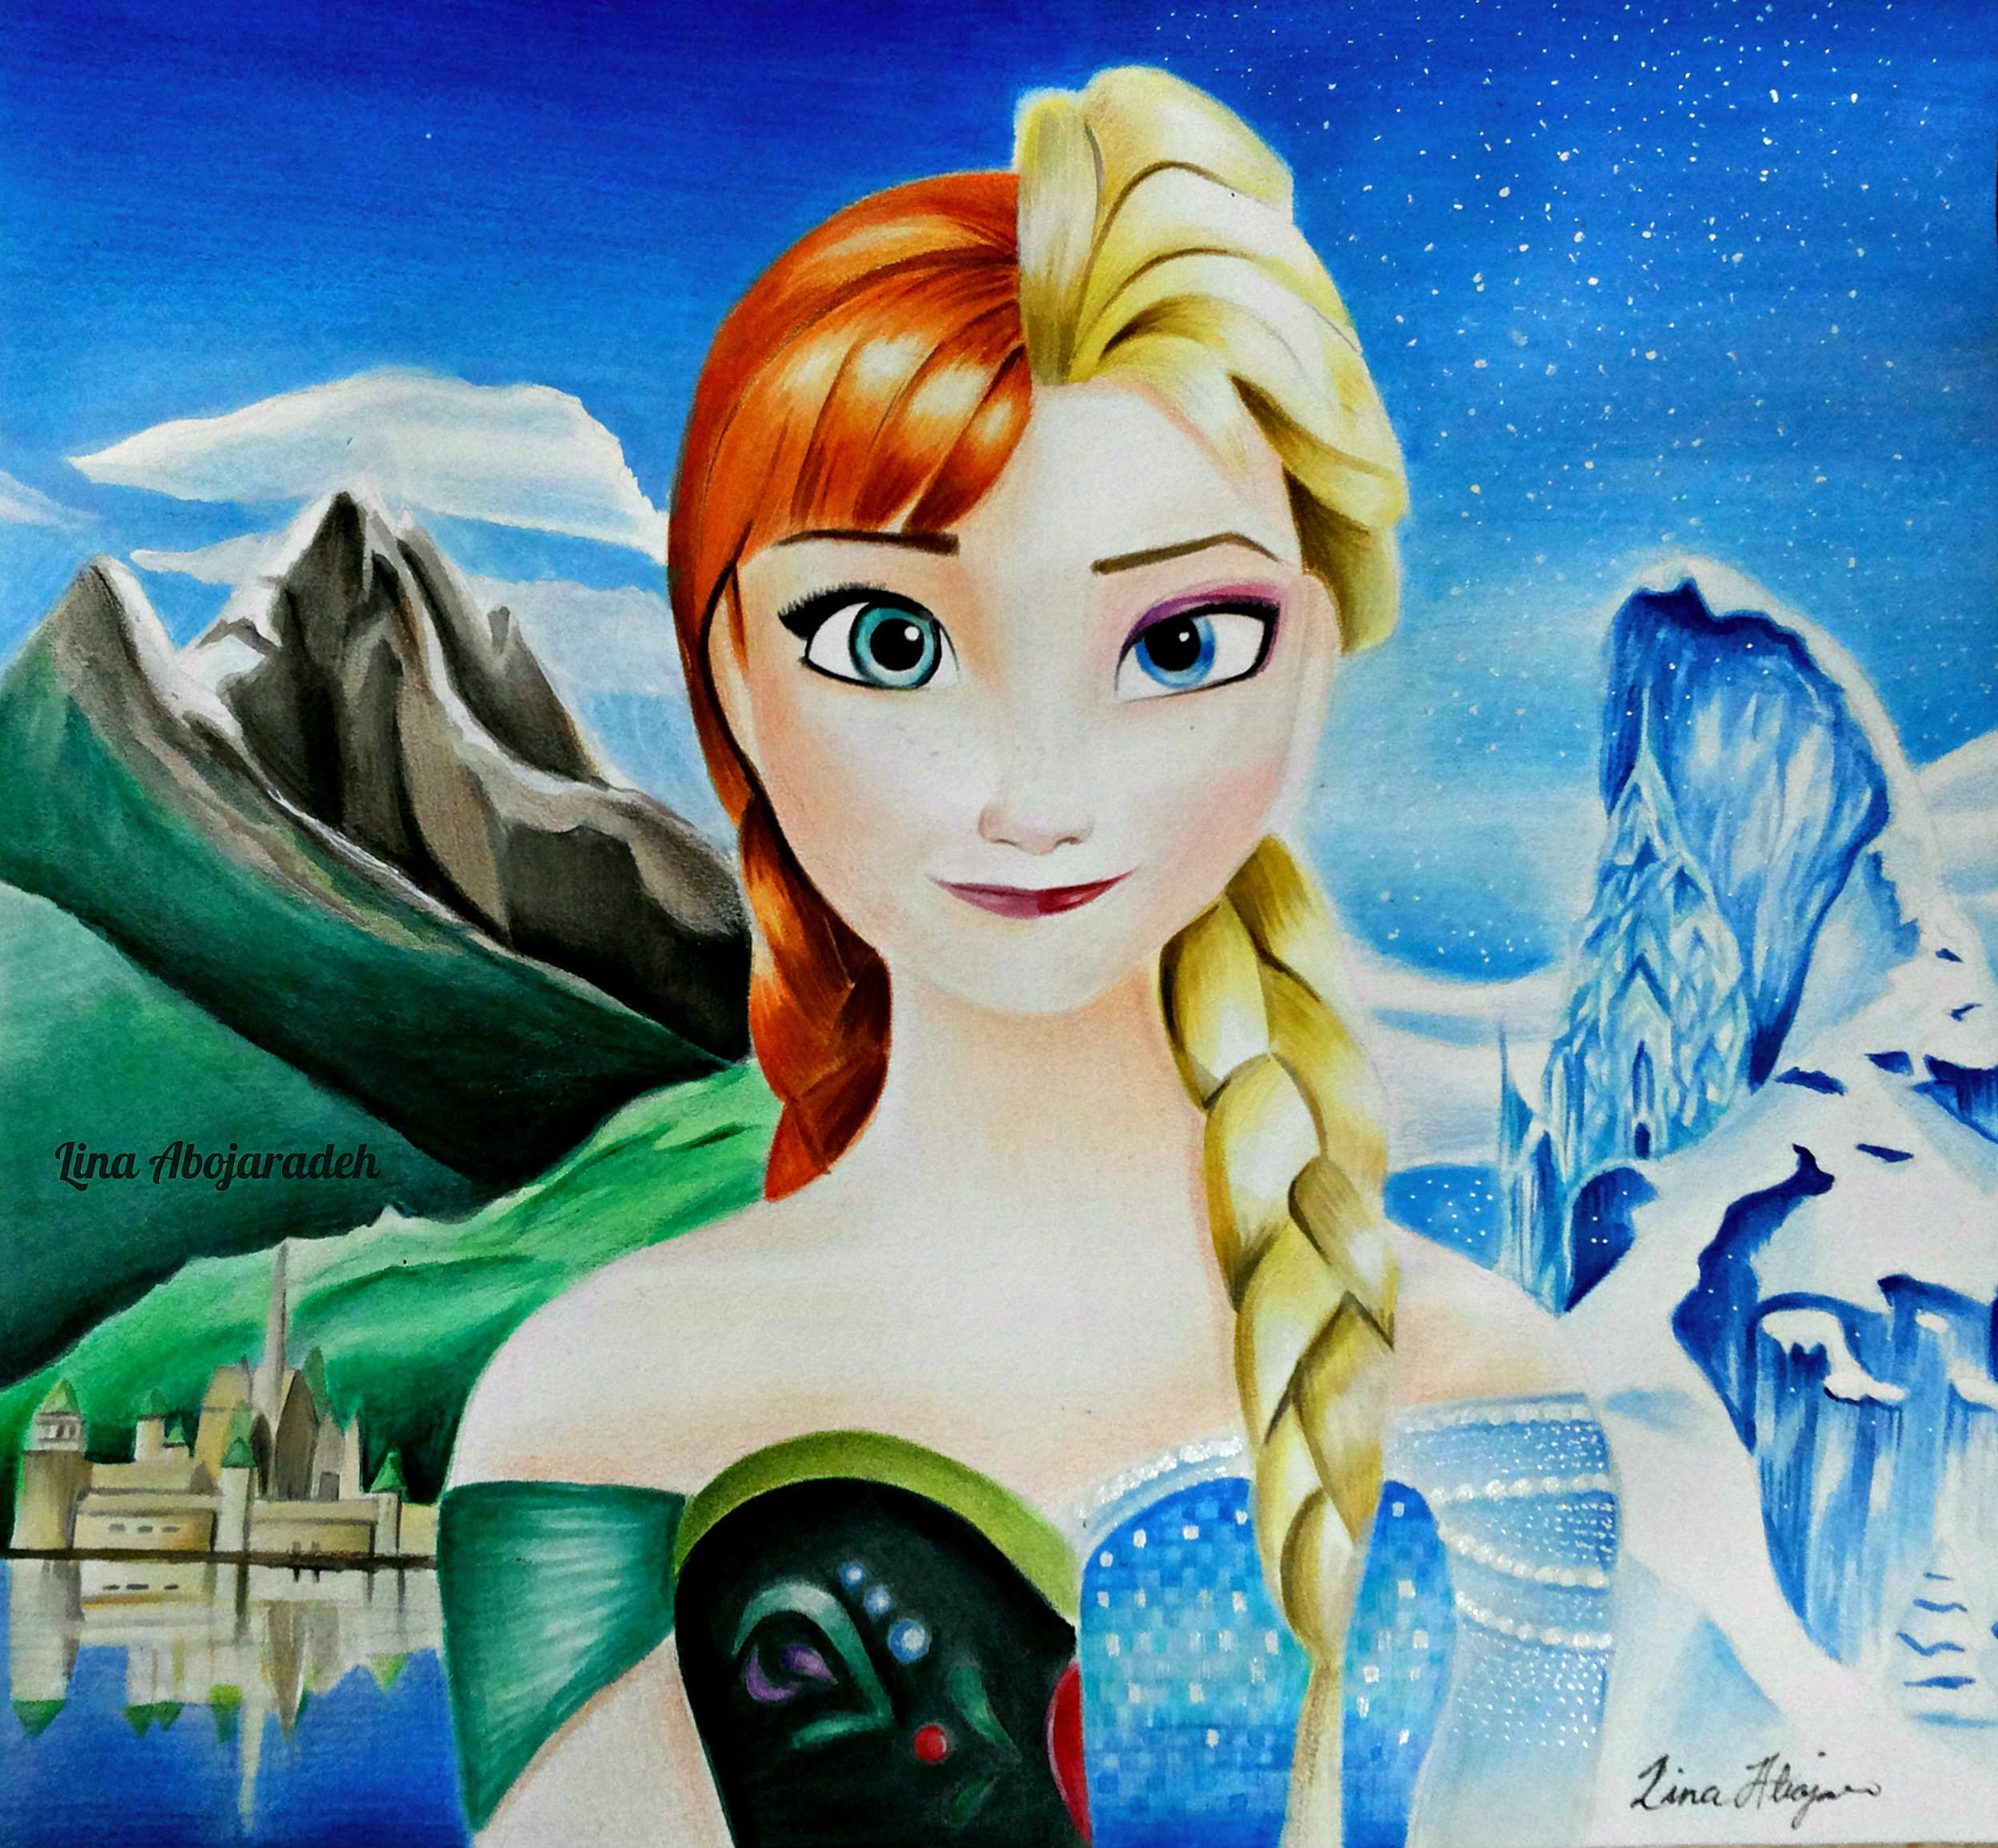 2501x2313 Frozen Drawing Queen Elsa And Anna Speed Drawing